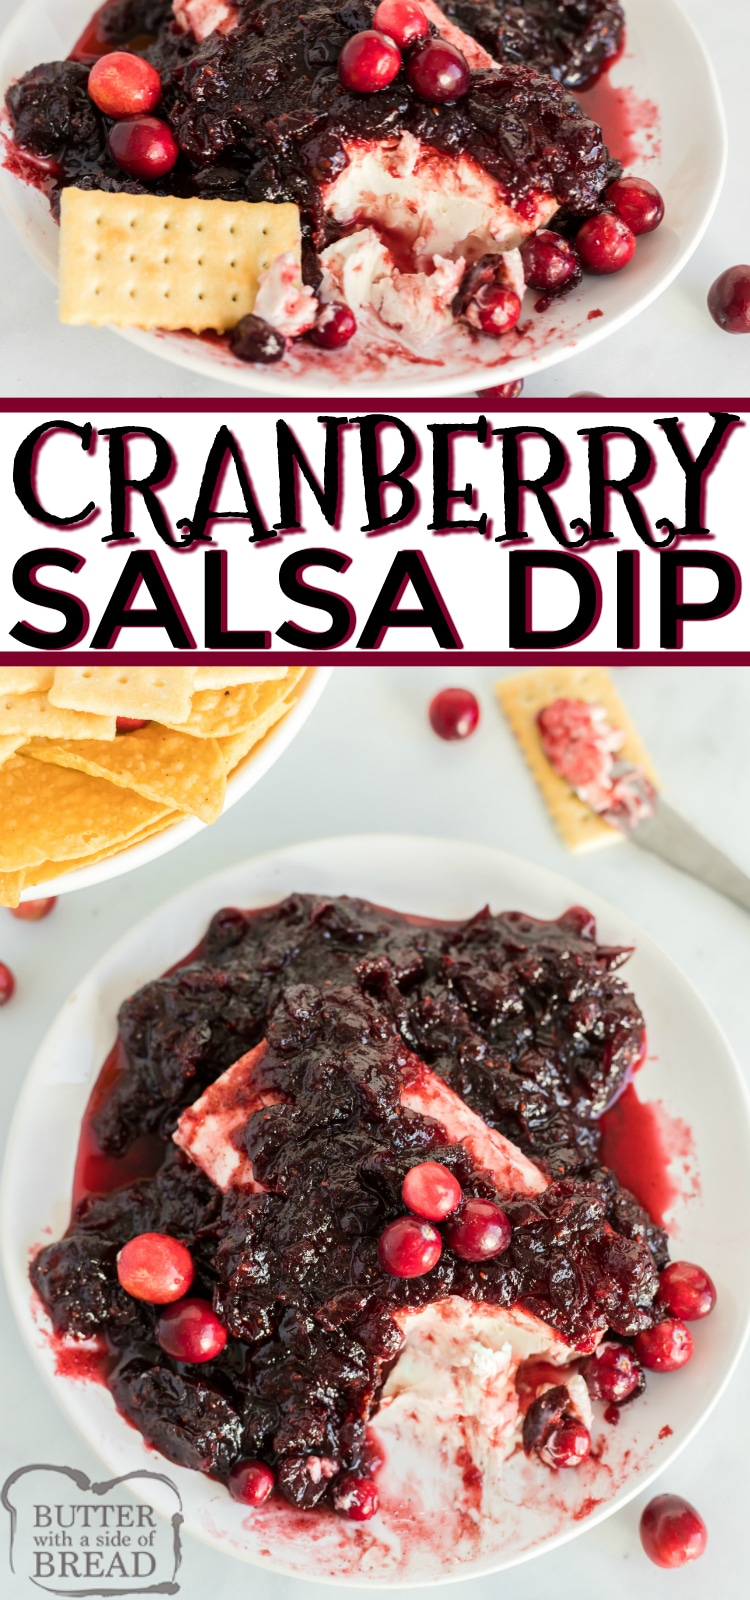 Cranberry Salsa Dip is made with cranberries, sugar and spices, and then poured over cream cheese to make a delicious holiday appetizer recipe. This simple dip recipe is perfect for parties and goes well with chips and crackers.